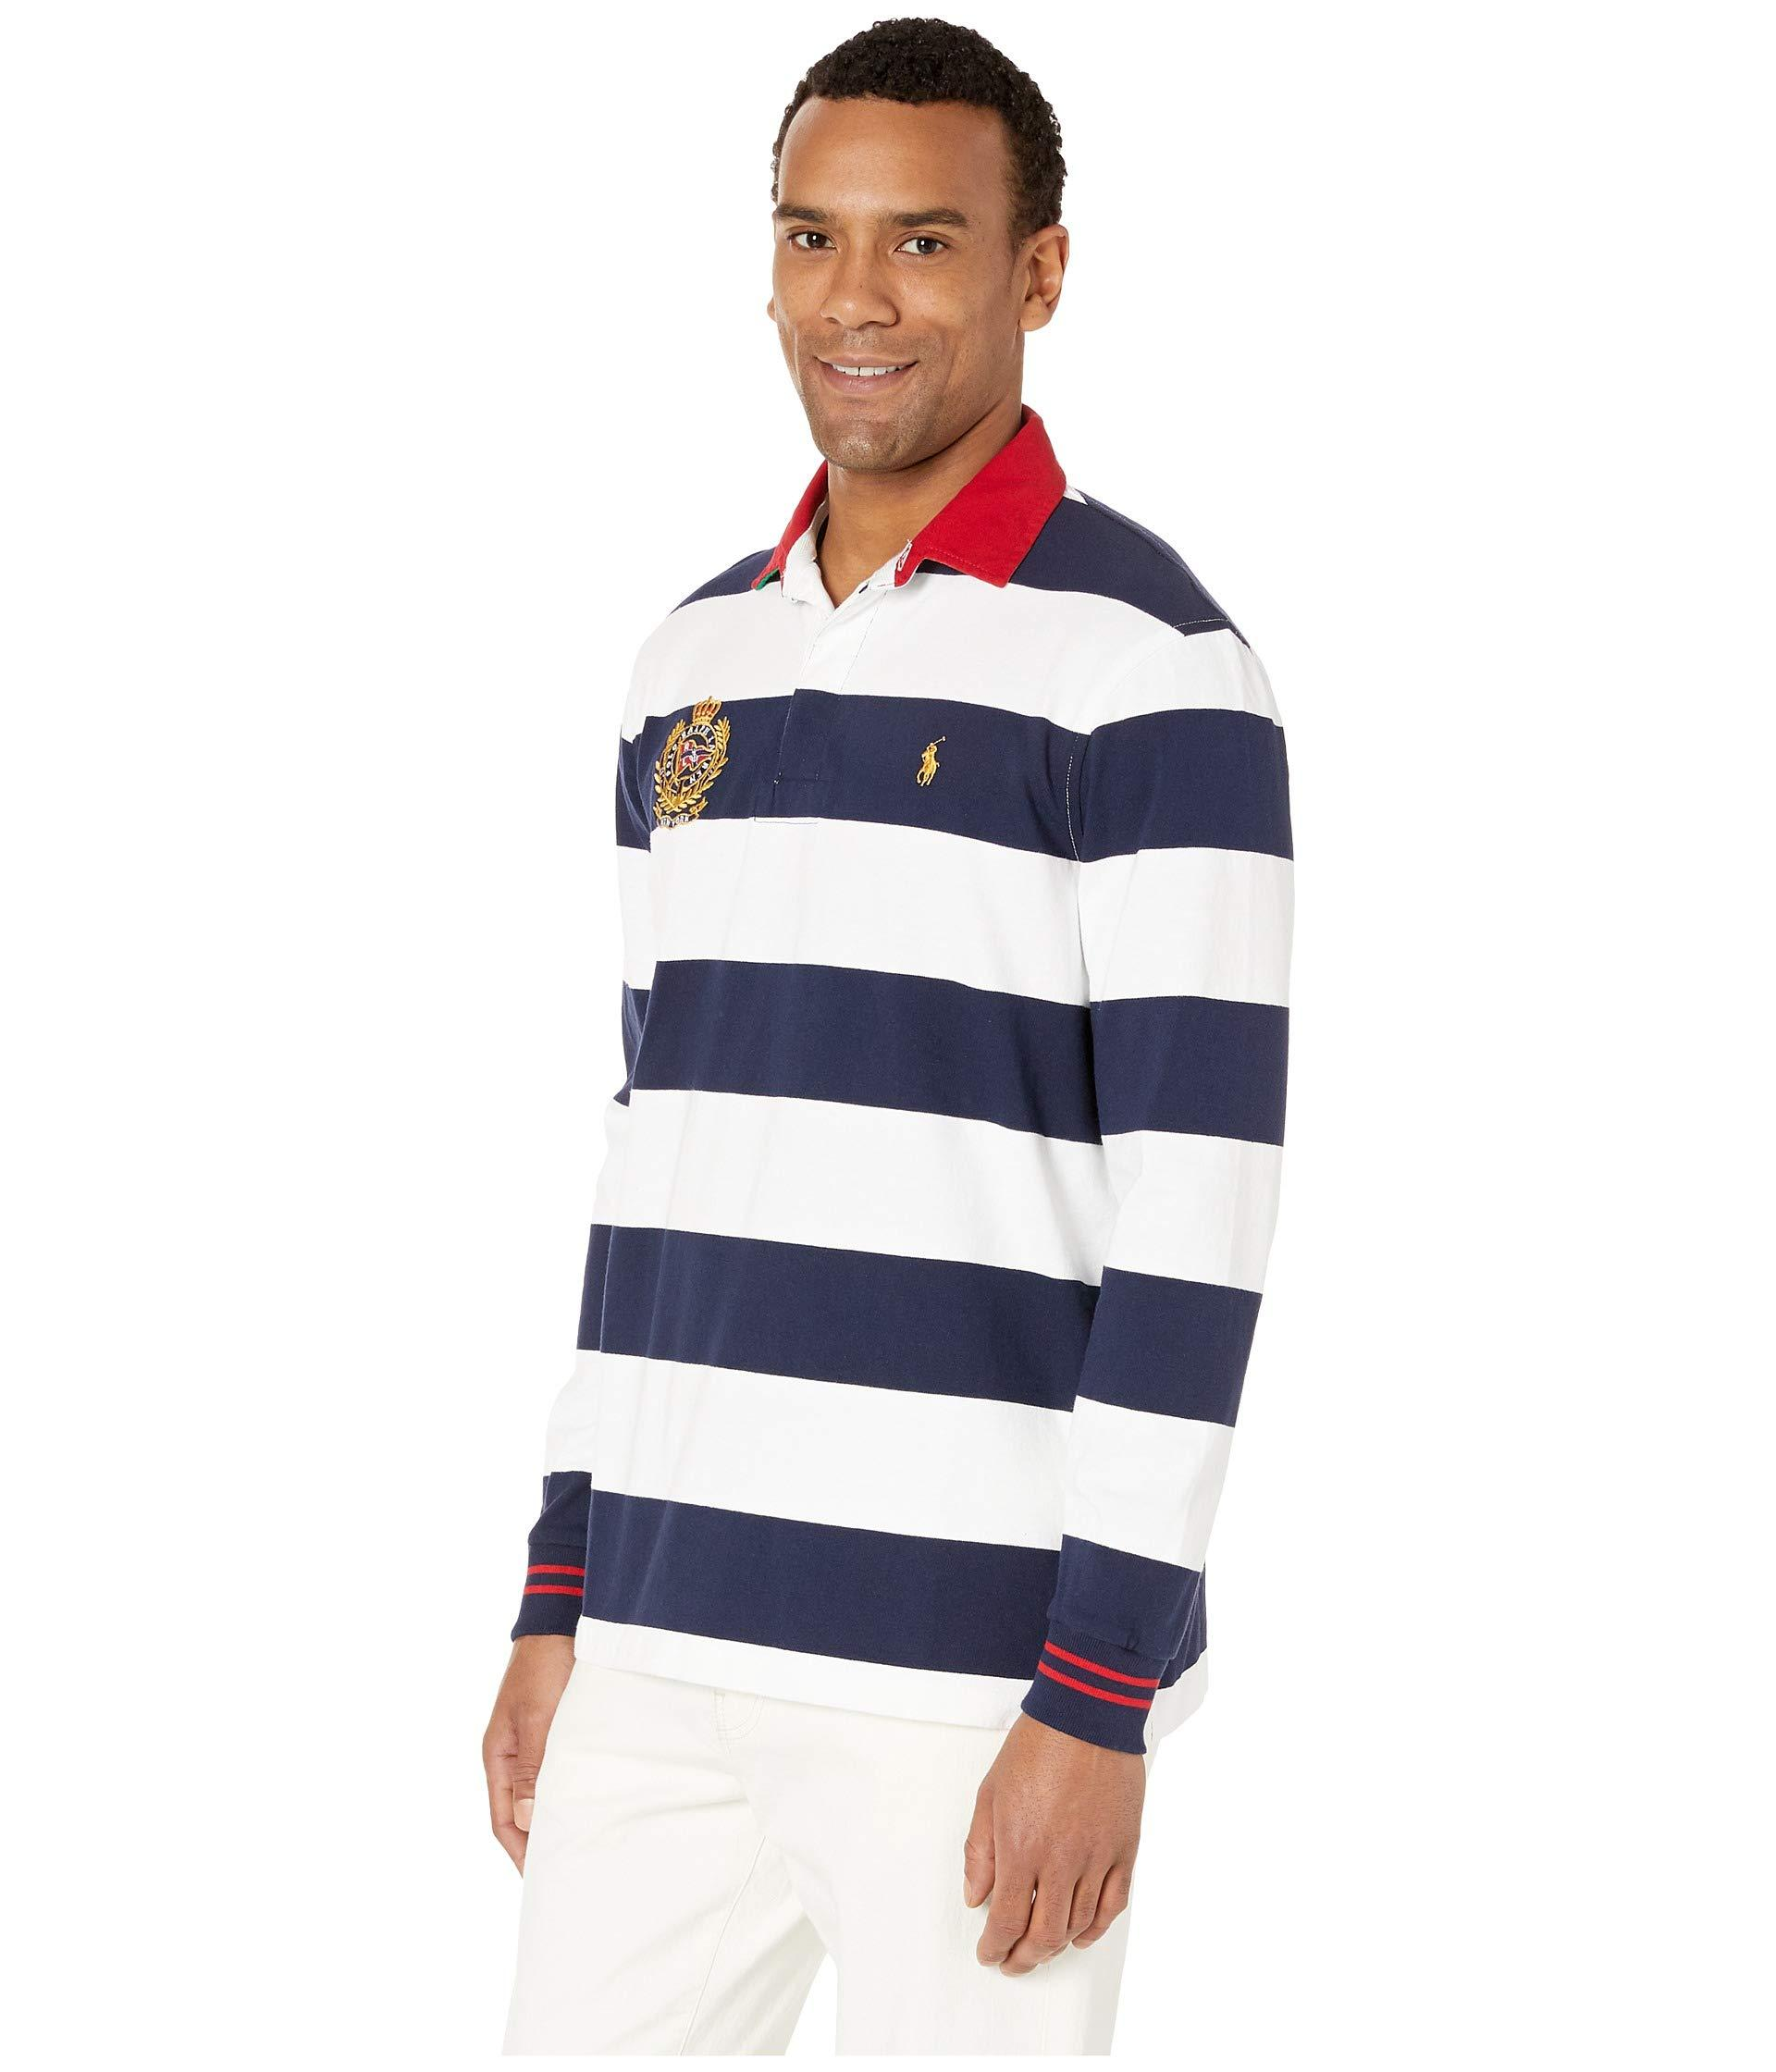 a033324f Lyst - Polo Ralph Lauren Long Sleeve Rugby Polo (cruise Navy/white) Men's  Sweatshirt in Blue for Men